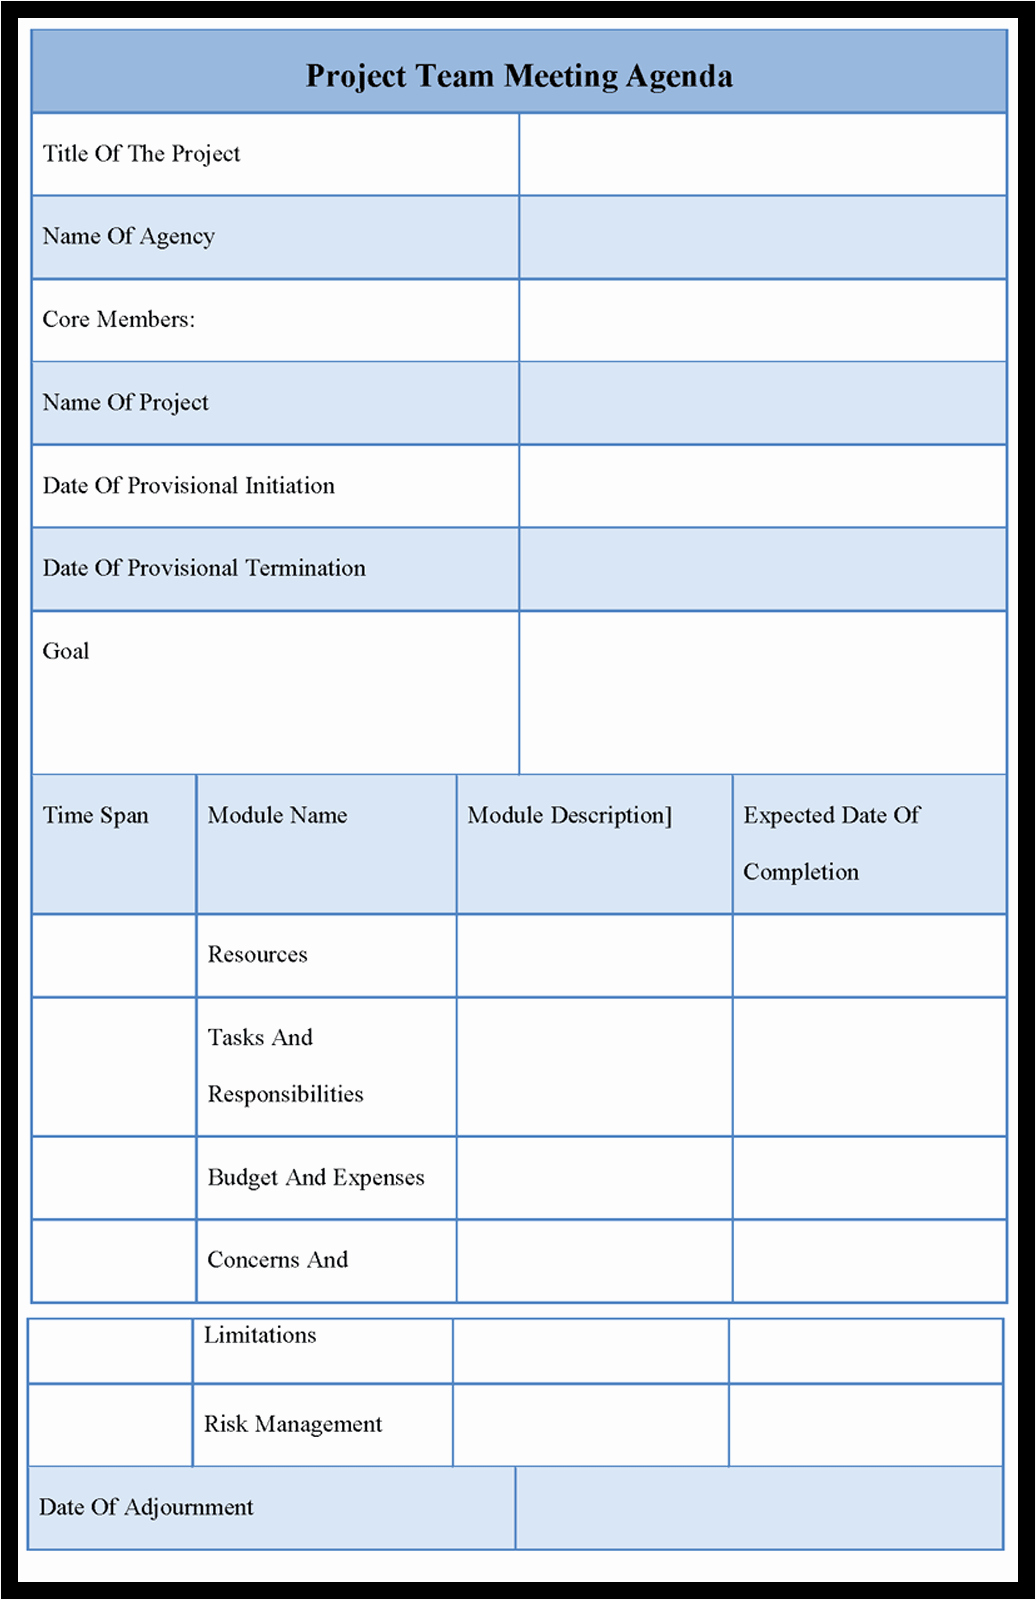 Project Team Meeting Agenda Template Fresh Agenda Outline Example Mughals